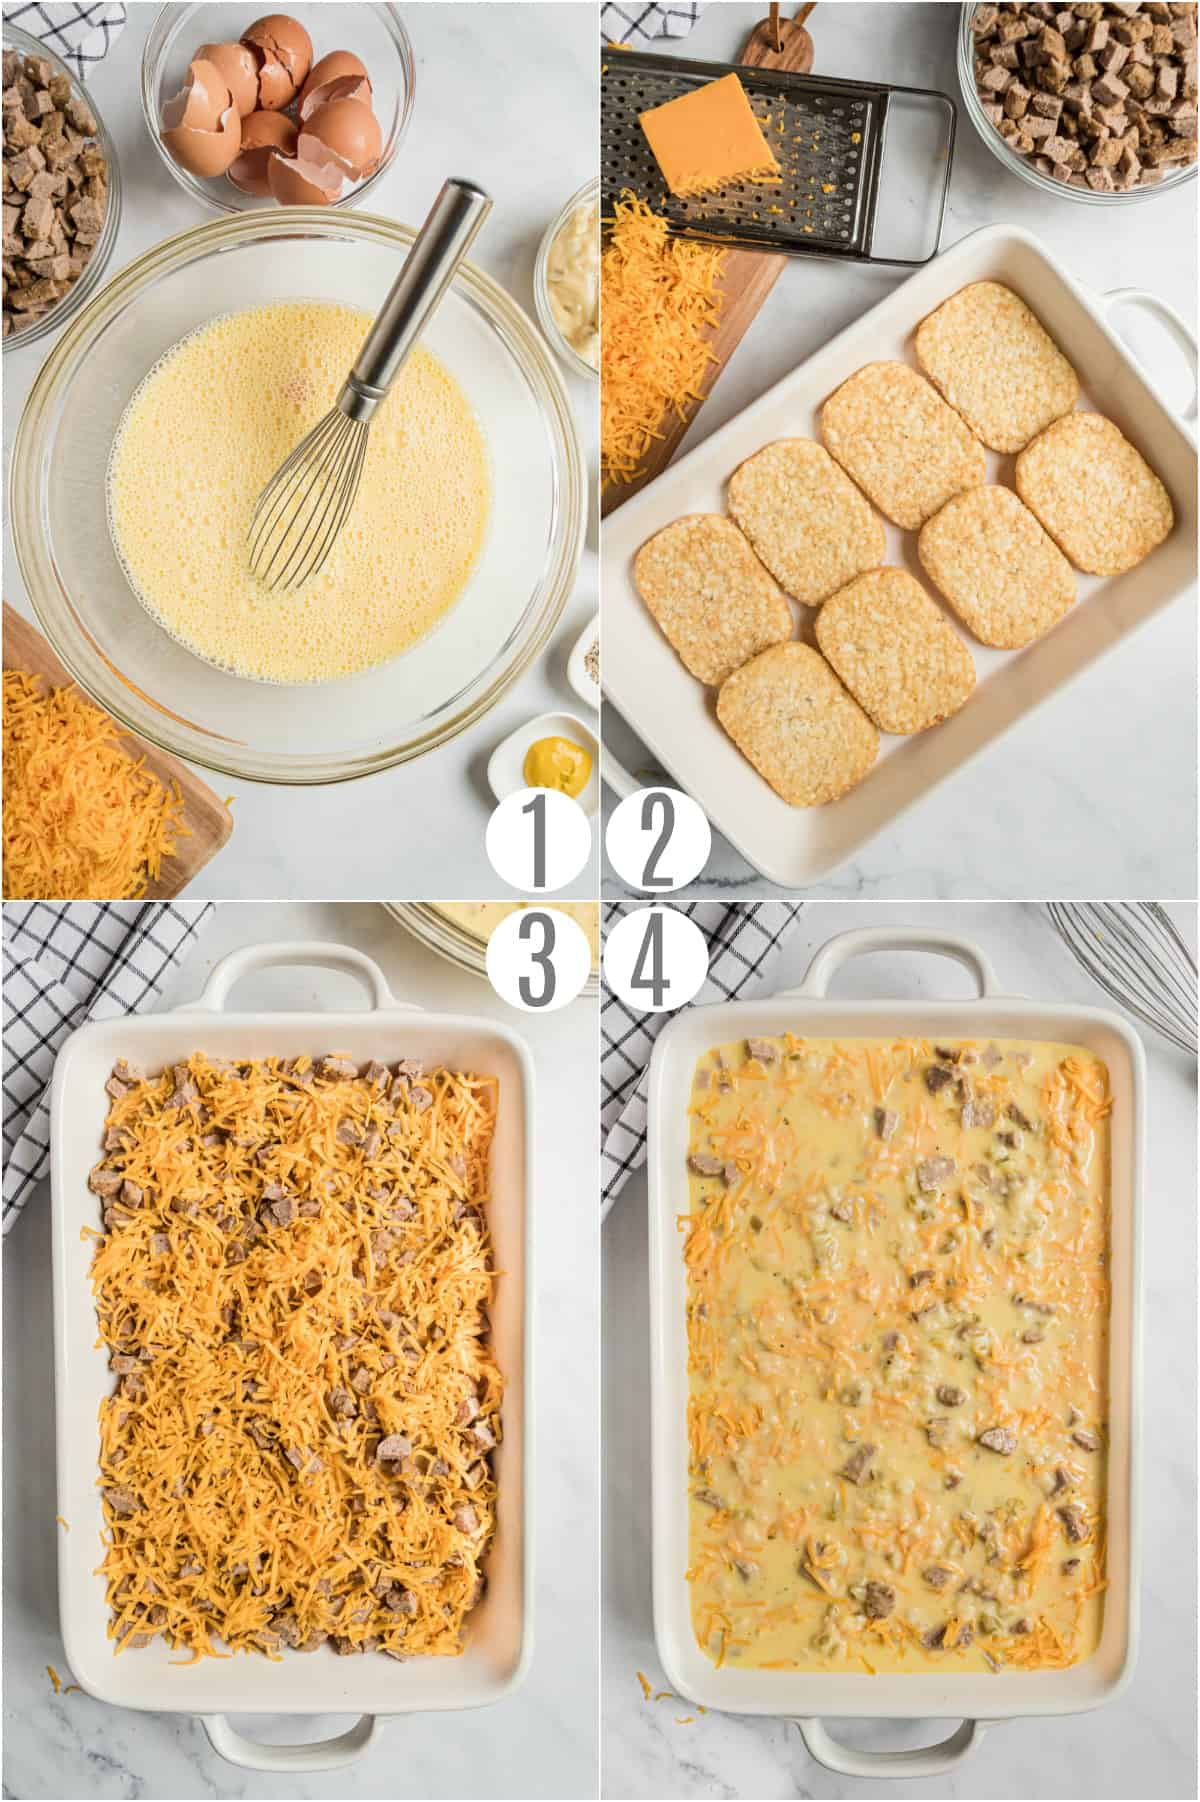 Step by step photos showing how to make overnight egg casserole.